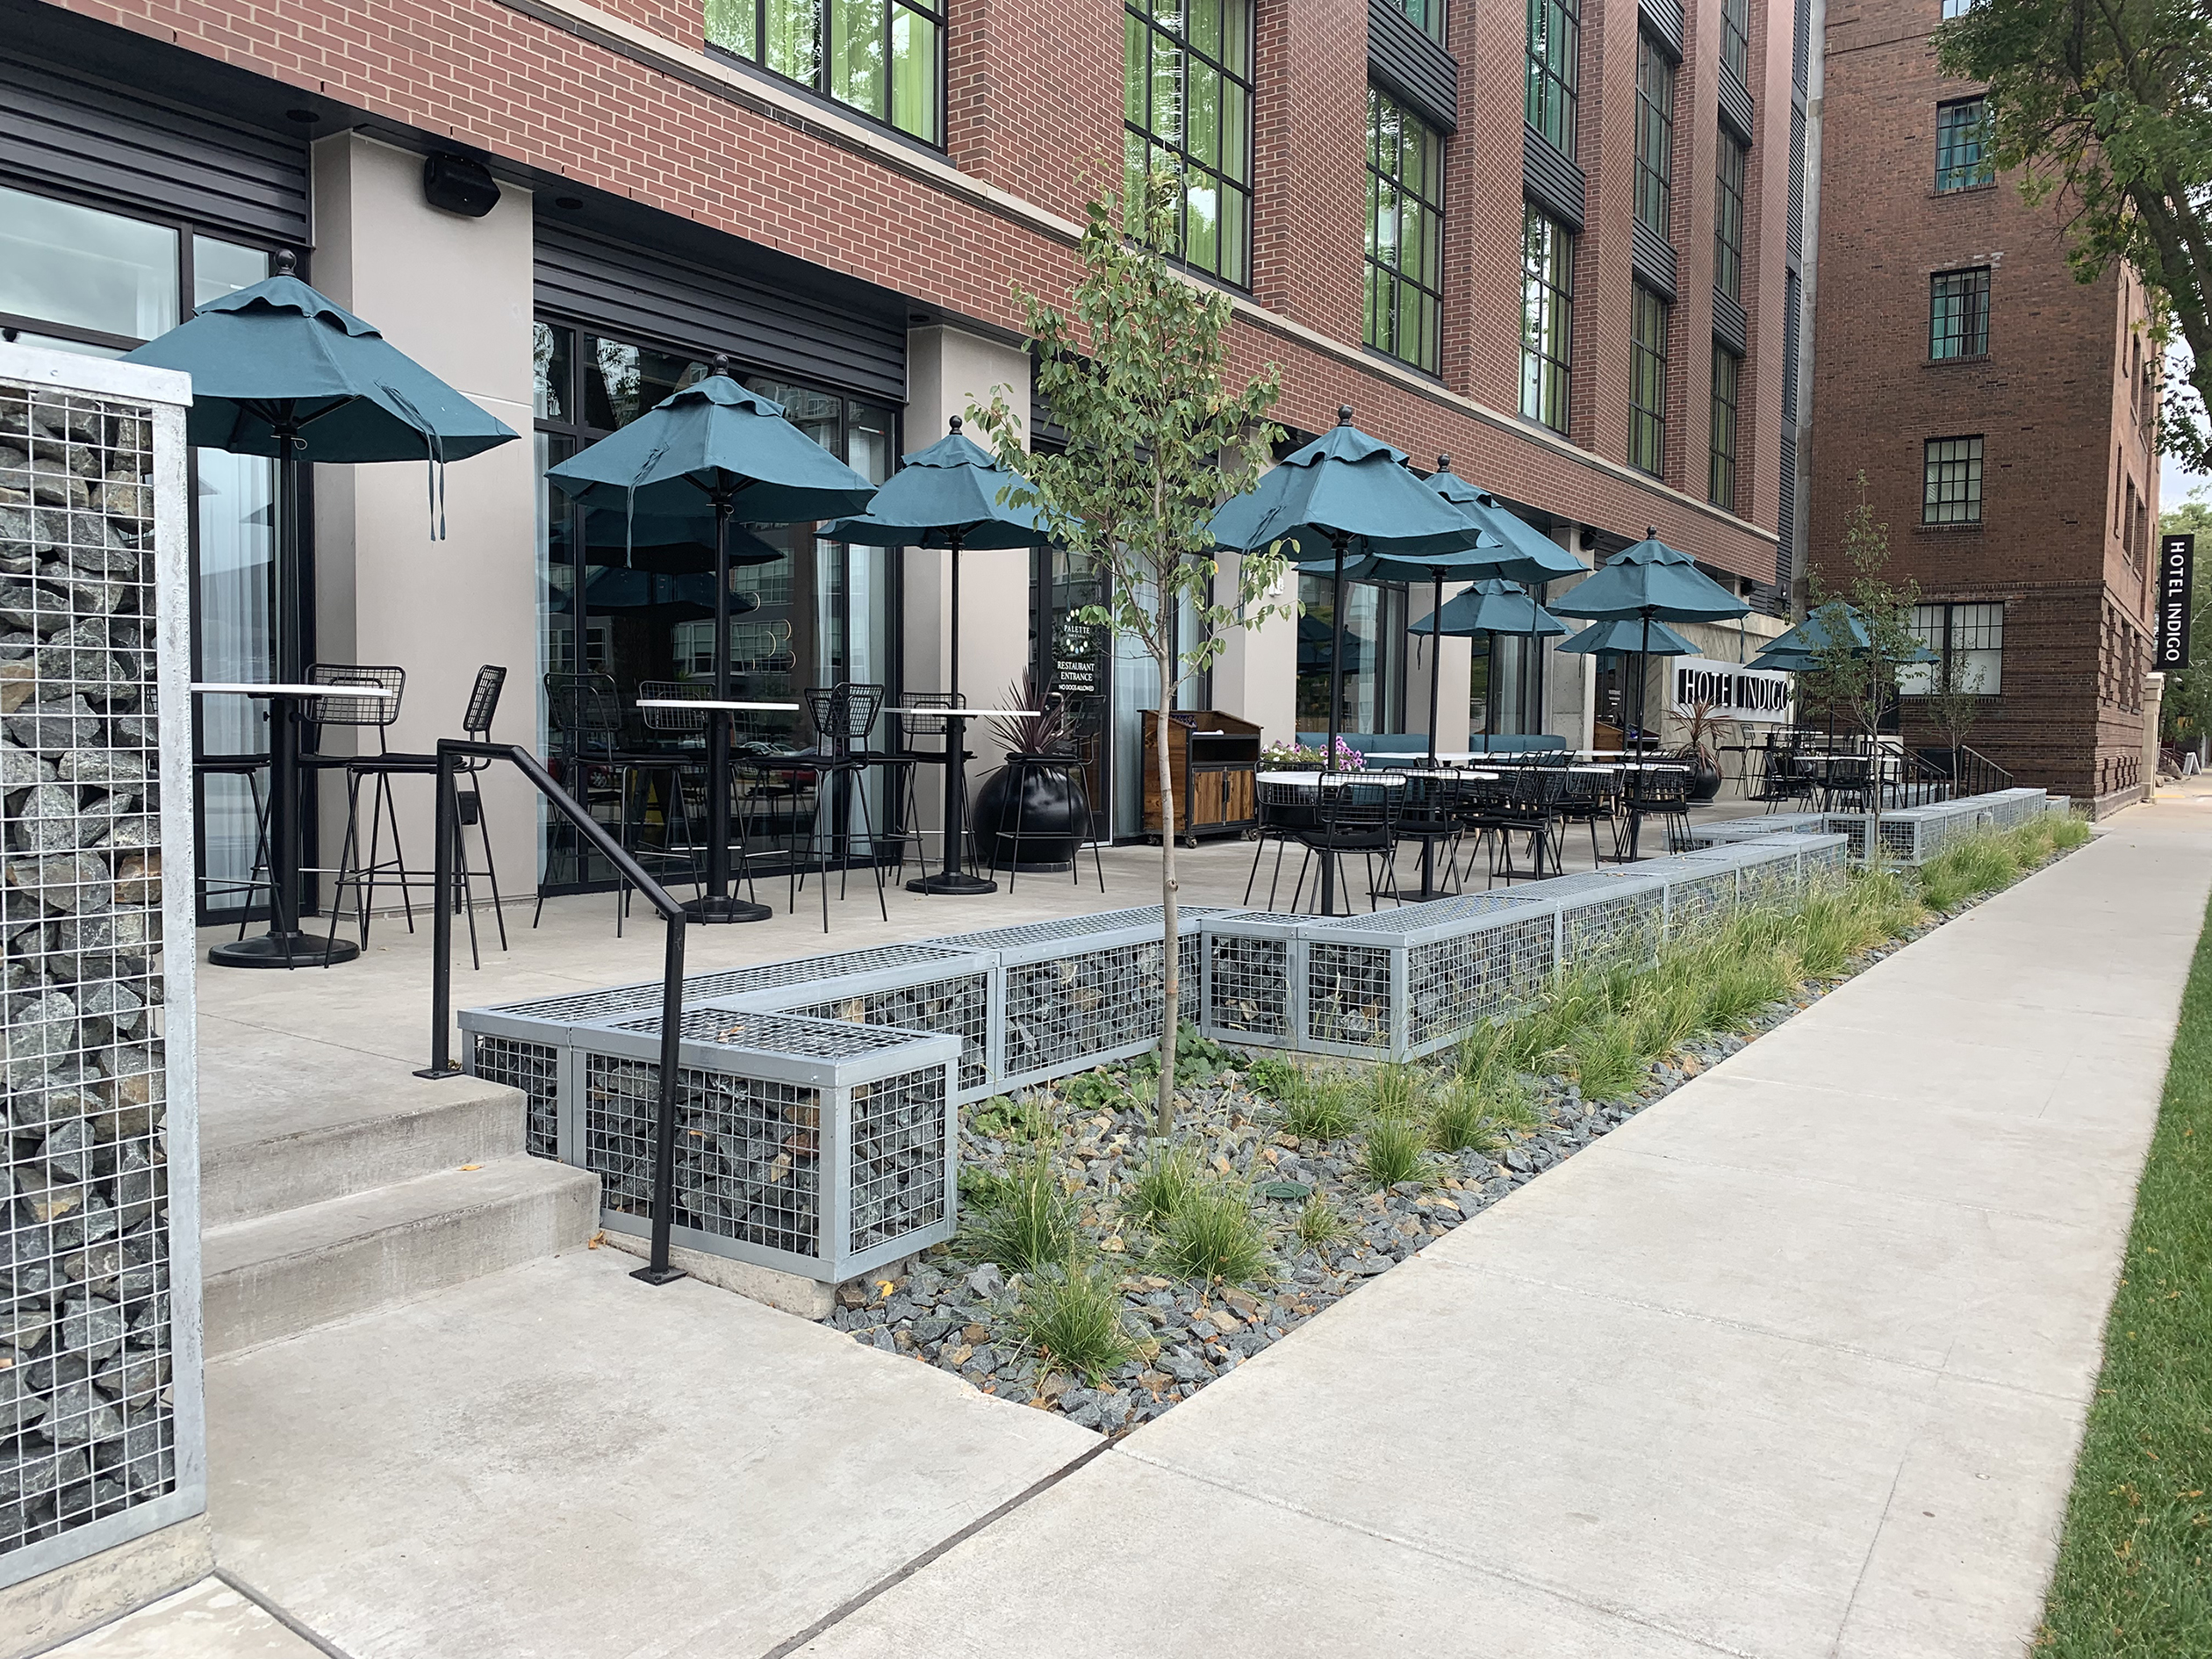 True to the Hotel Indigo brand, the project drew inspiration from the eclectic neighborhood and has become a vibrant reflection of the community itself. The outdoor amenity spaces draw from the industrial character of the corridor with an intentional selection of playful colors and materials.